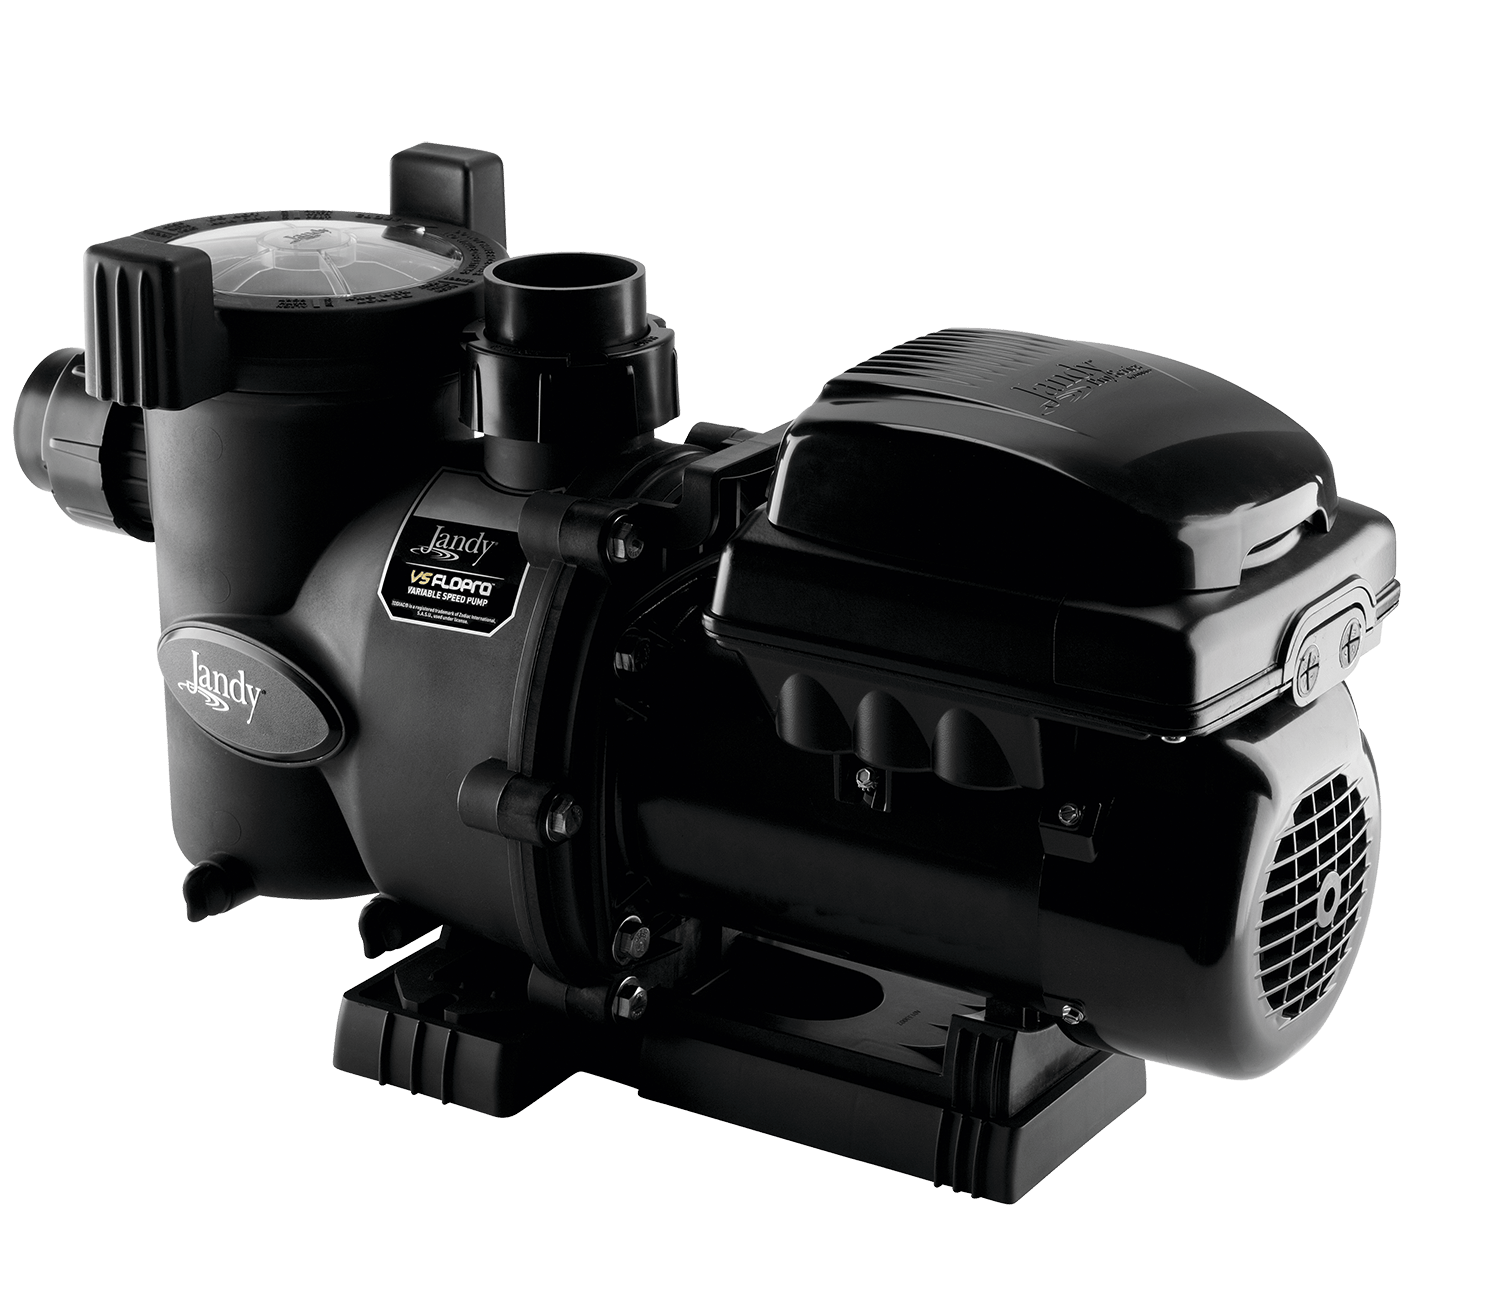 VS FloPro 0.85 HP pump back view